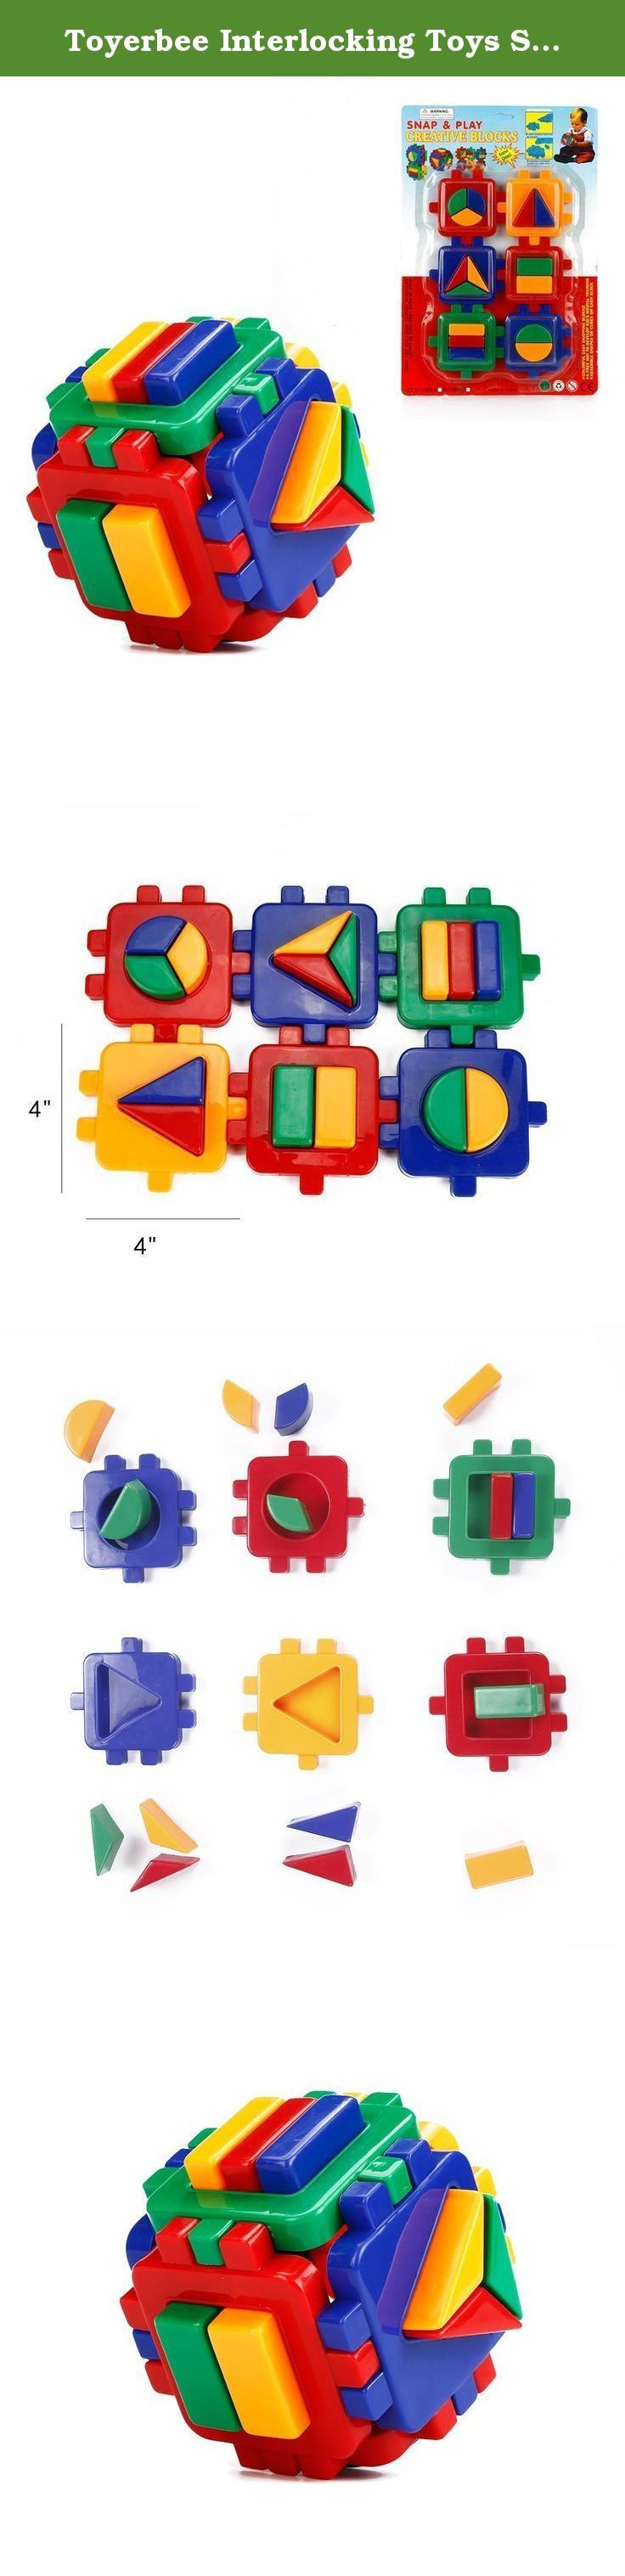 Toyerbee Interlocking Toys Shape Sorter Toy Colorful Building Blocks Plastic Creative Blocks Cube Montessori Toy Bricks For Kids. 1.It is a good toy to teach the kids about the colors and shapes. 2.Improve kids' motor skills and cognitive ability.